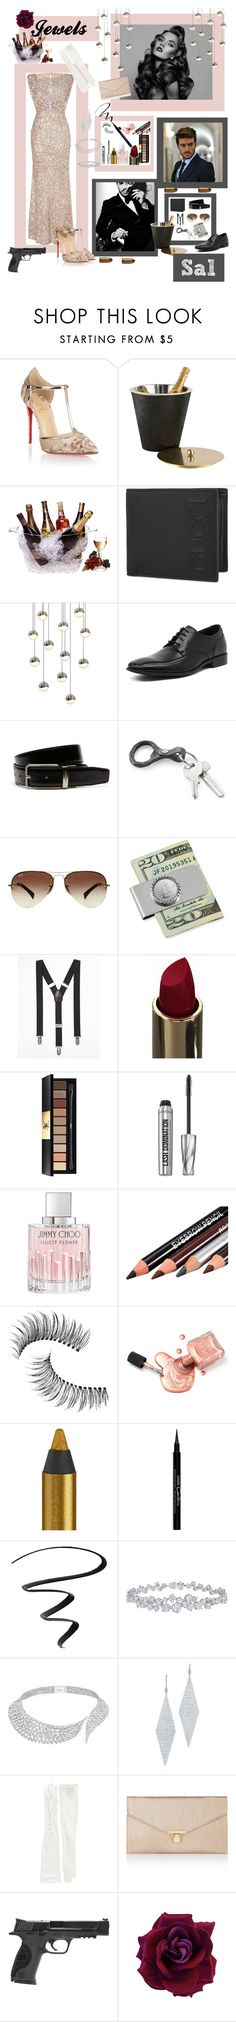 """Jewels and Sal - Mafia and Trophy Wife - 1969."" by rebeccaelizabethmattox ❤ liked on Polyvore featuring Christian Louboutin, Prodyne, Gucci, Sonneman, Julius Marlow, Lacoste, Ray-Ban, American Coin Treasures, Express and Yves Saint Laurent"